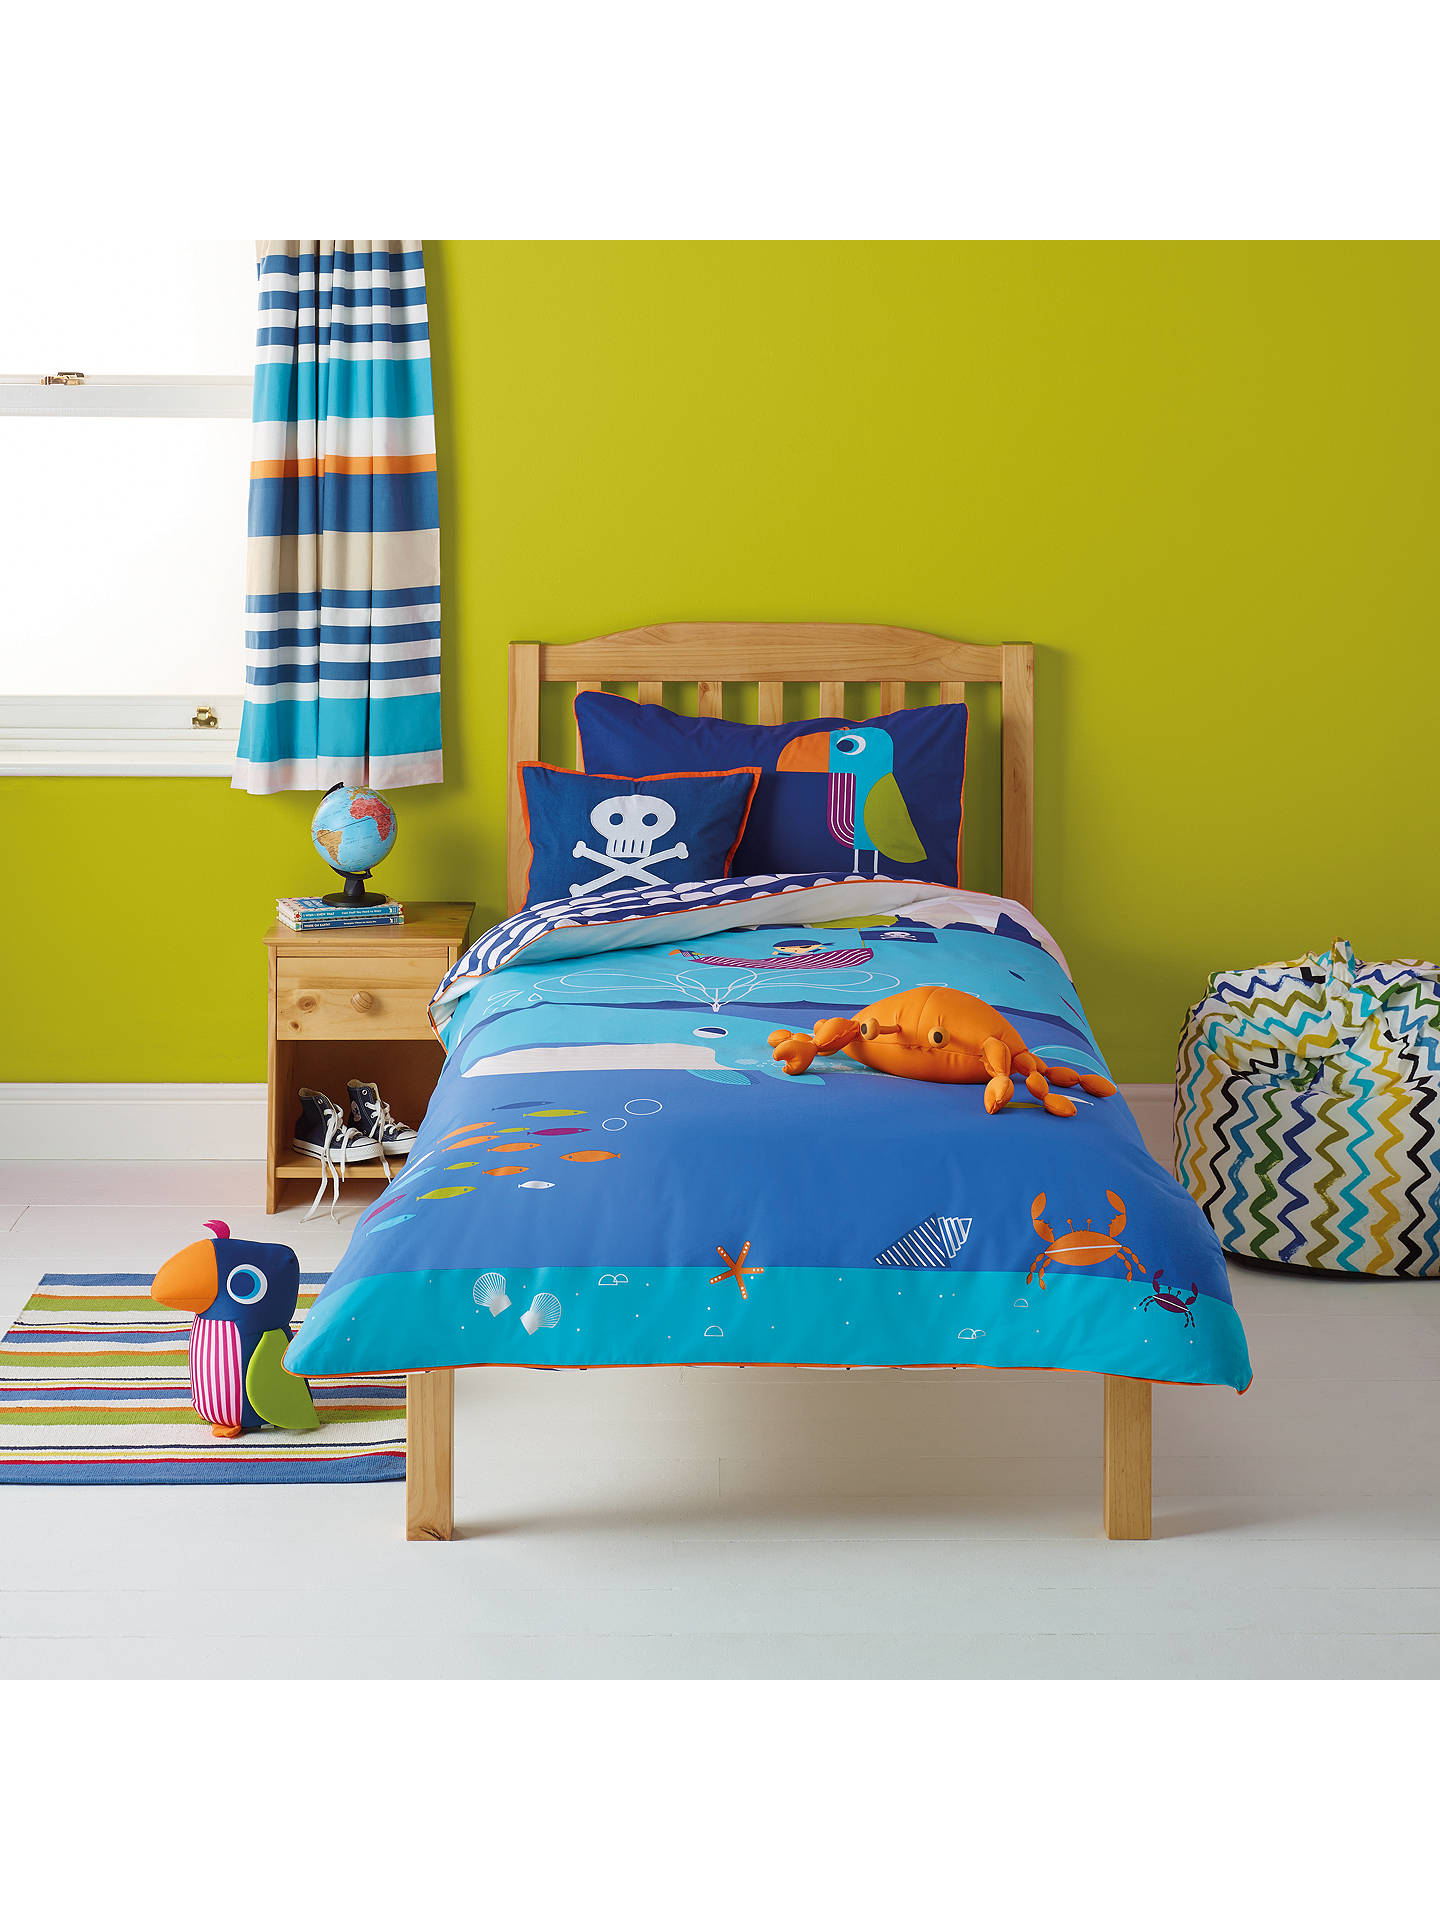 little home at john lewis waves whales spouting whales. Black Bedroom Furniture Sets. Home Design Ideas